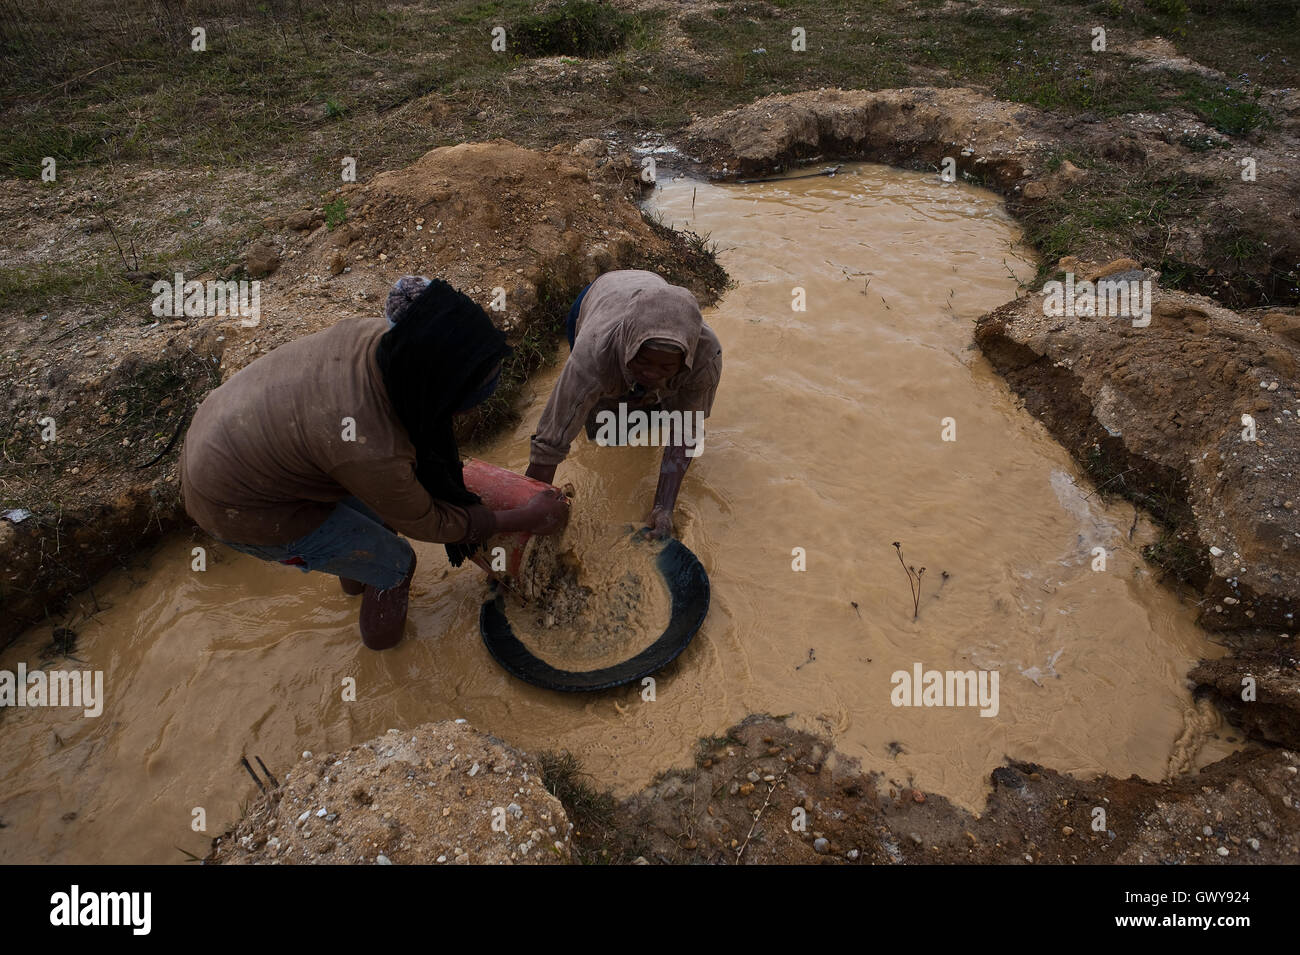 Two women are digging for gold ( Madagascar) - Stock Image